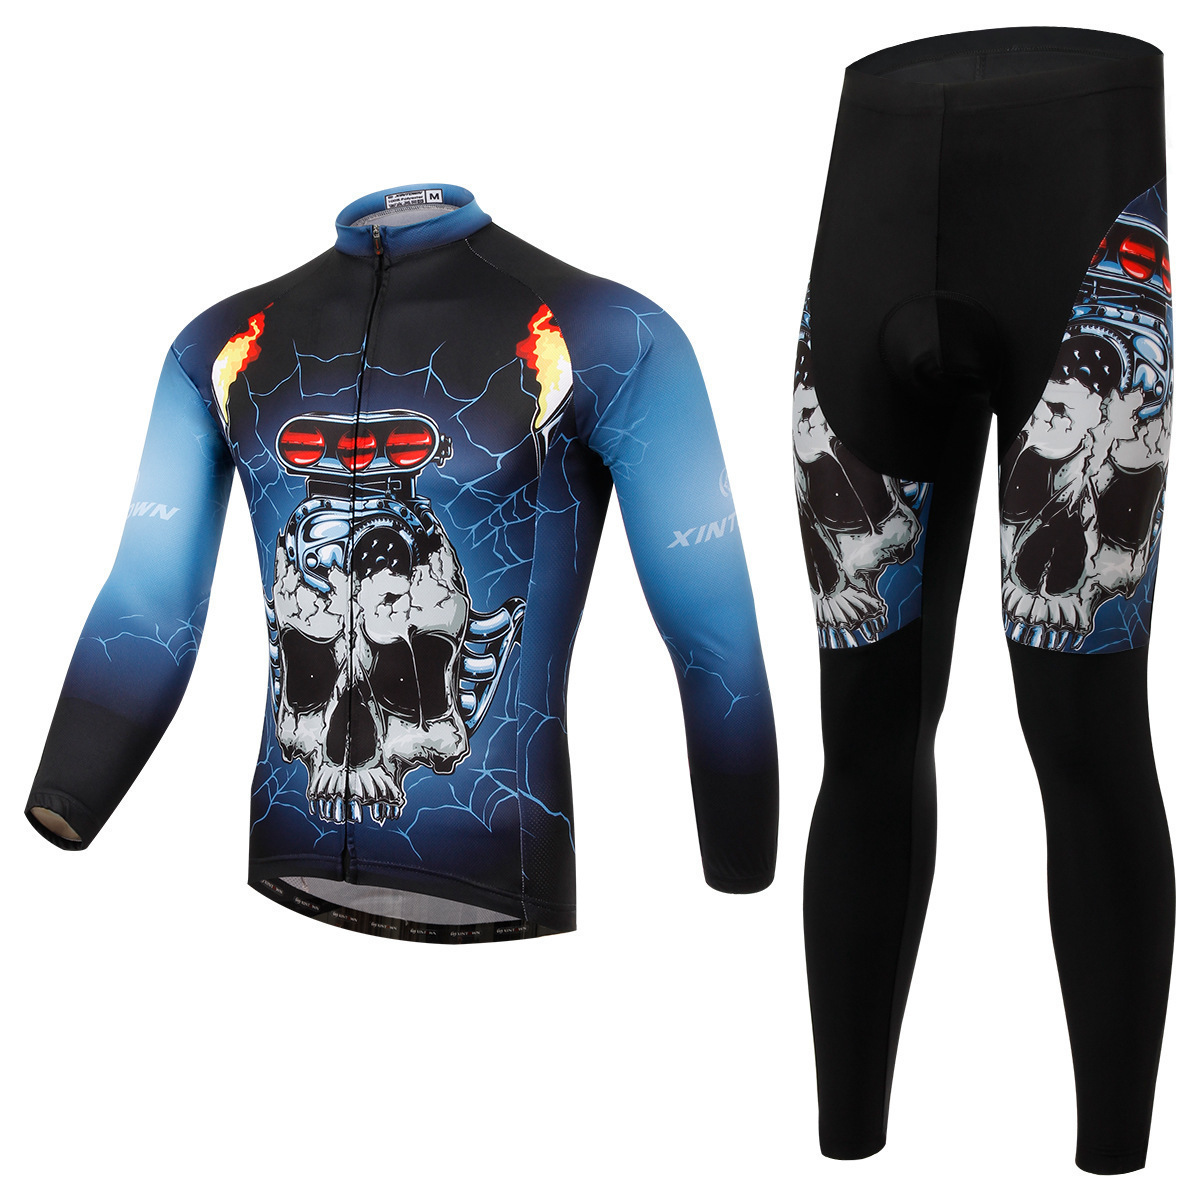 XINTOWN Spring Autumn Long Sleeve Cycling Jersey Bike Set Clothing Outdoor Bicycle Triathlon Wear Mountain Cycle Clothes предметы гигиены bike cycling clothing bicycle wear suit short sleeve jersey